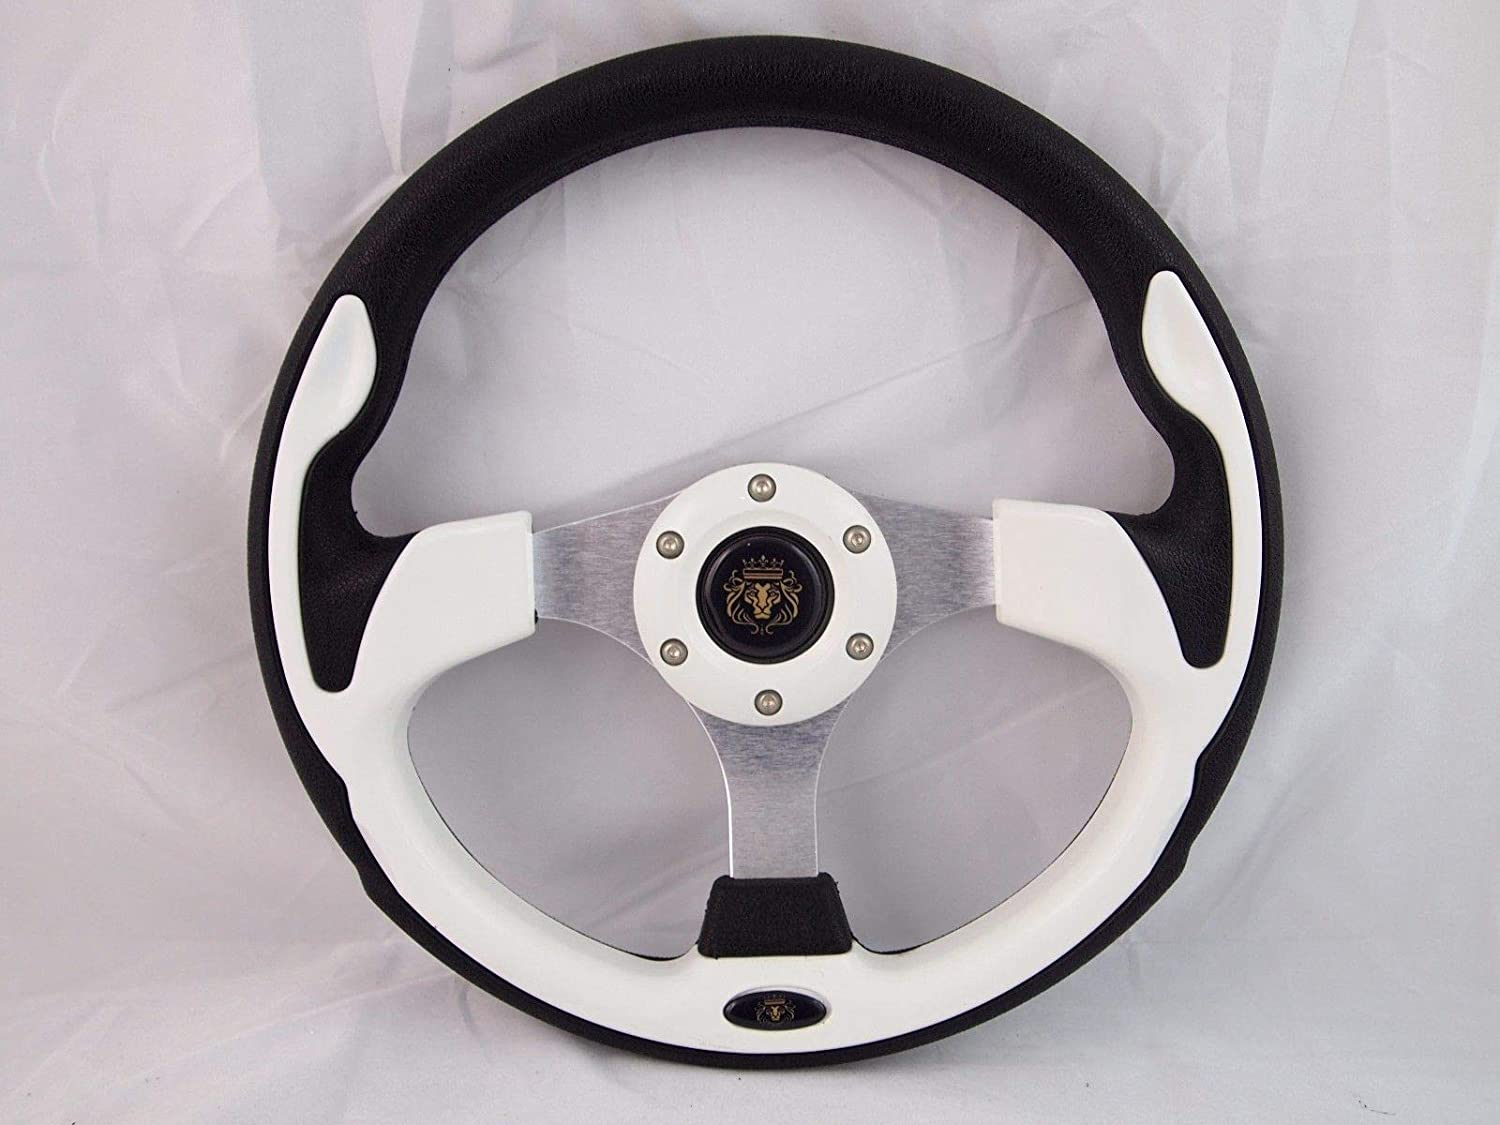 Steering Wheel with Adapter White for RZR 570 800 900 1000 New World Motoring